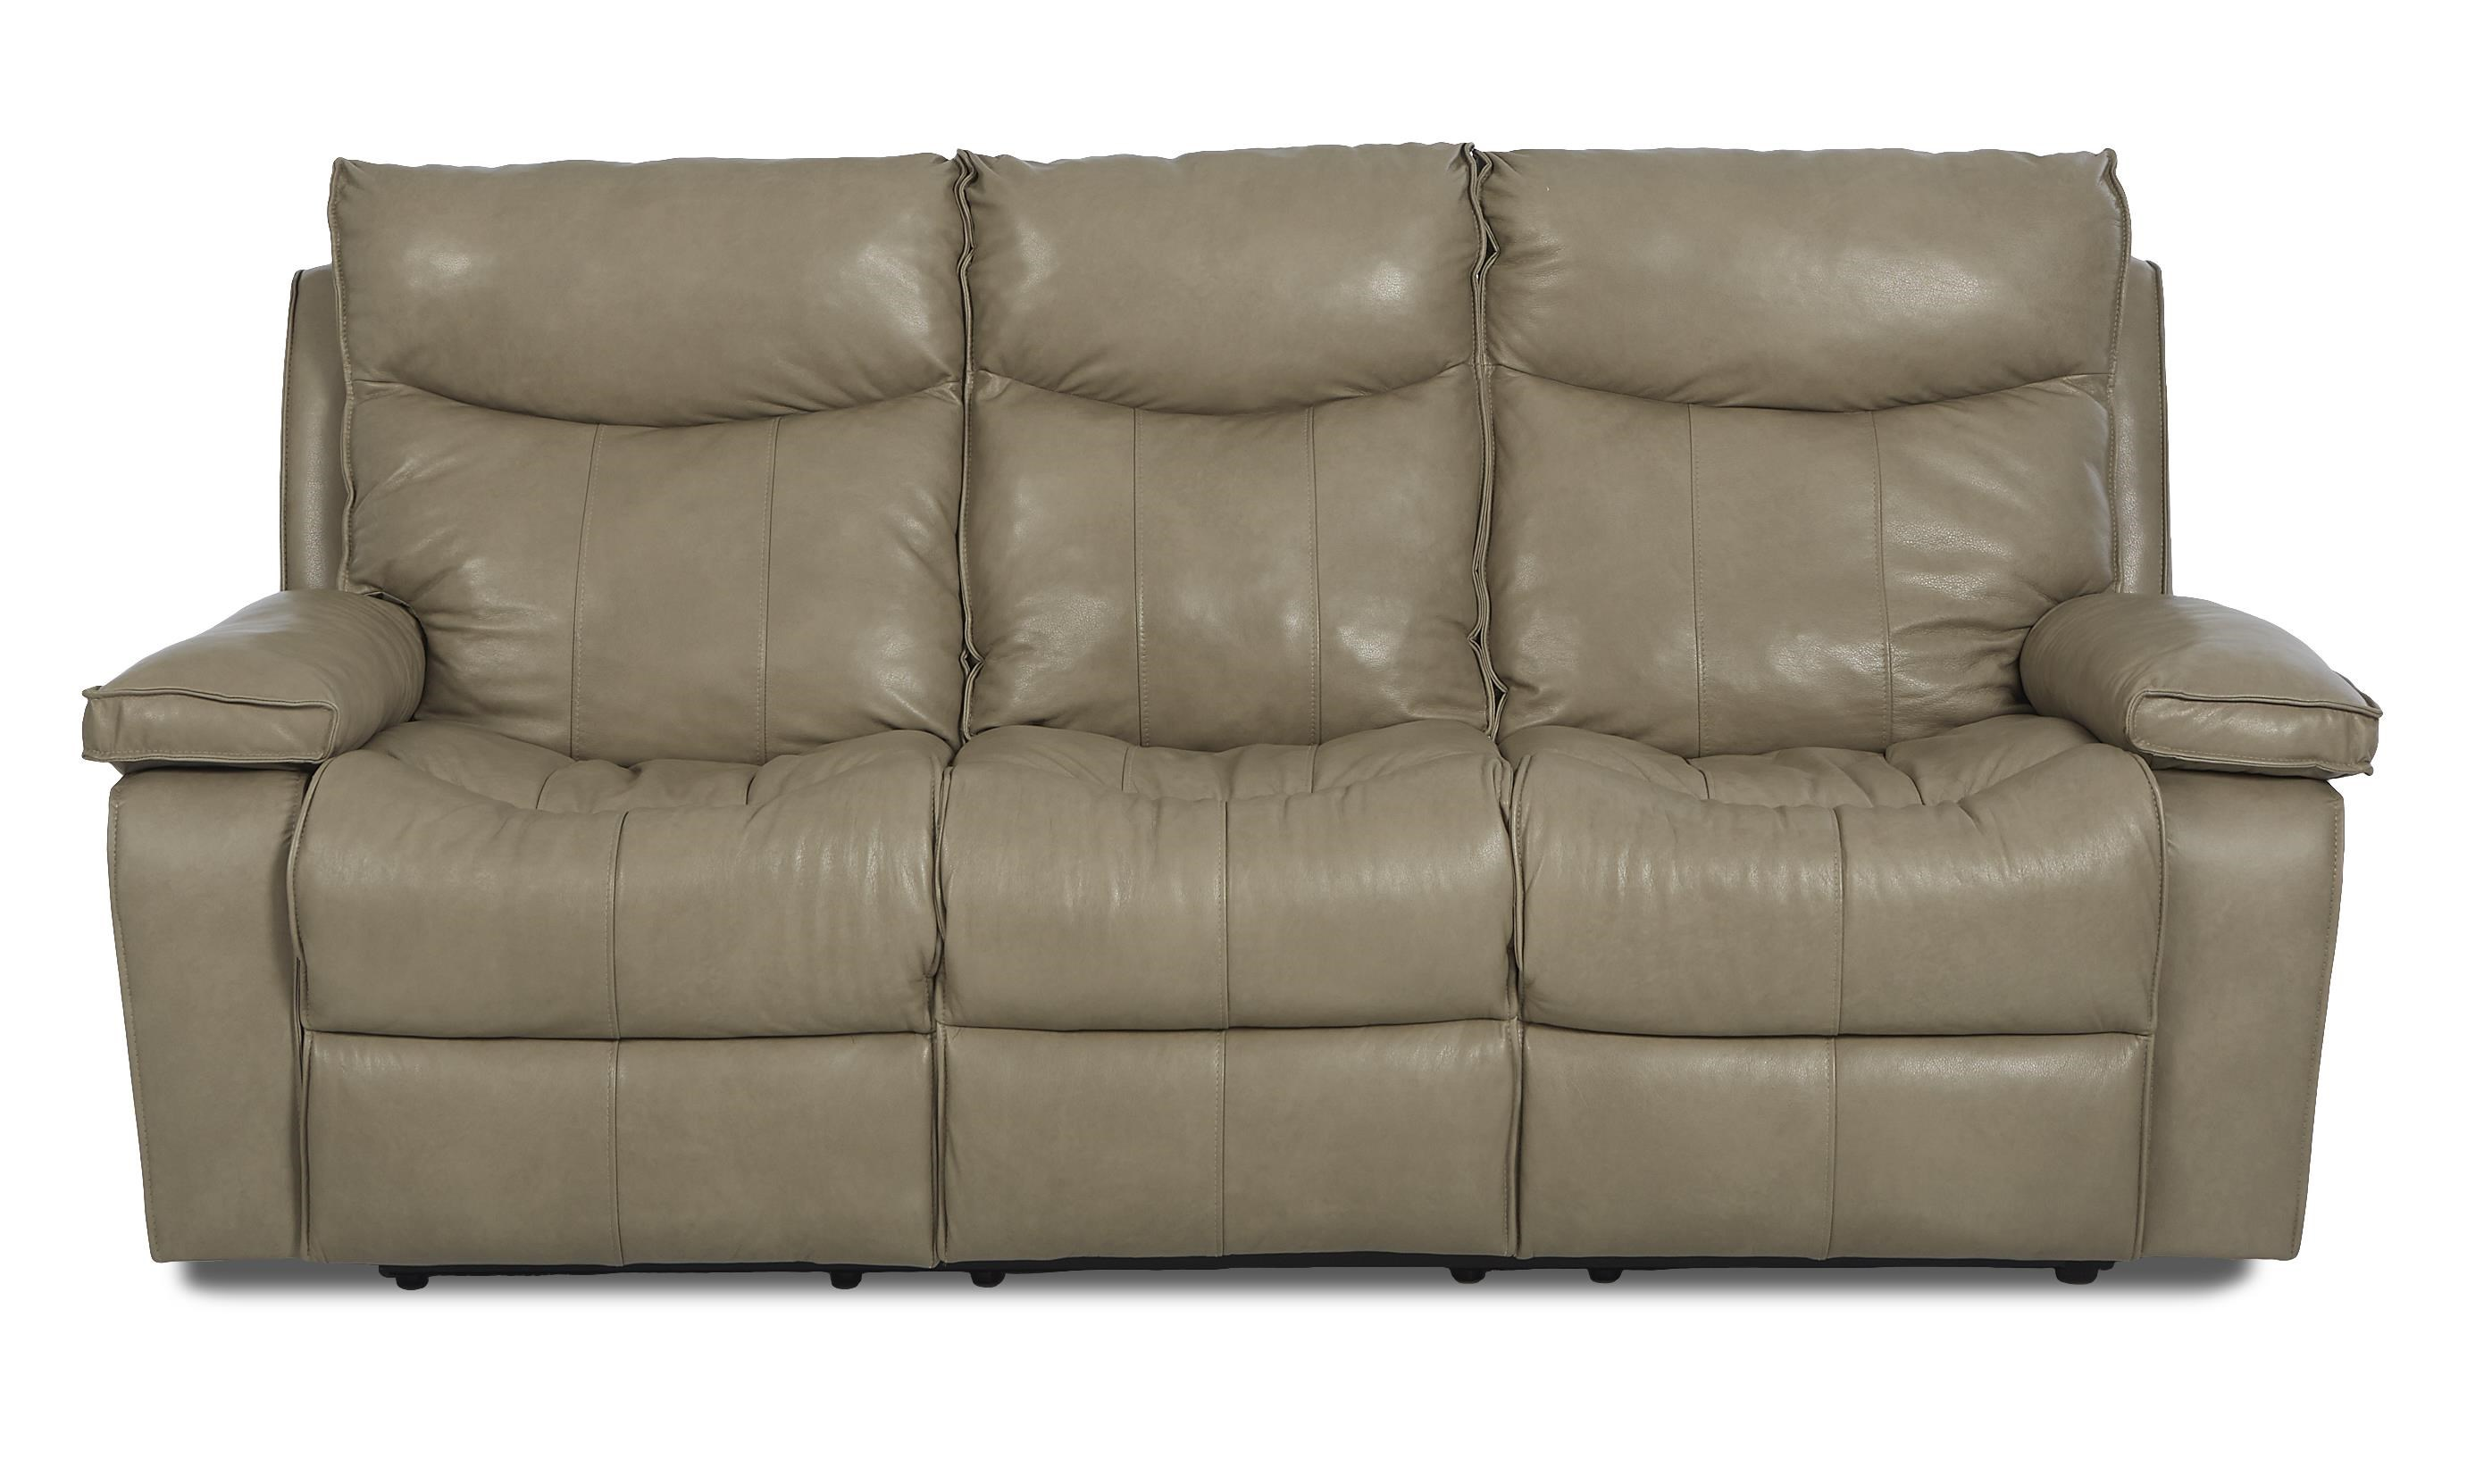 ... Contemporary Reclining Sofa. Item Shown May Not Represent Exact  Features Indicated